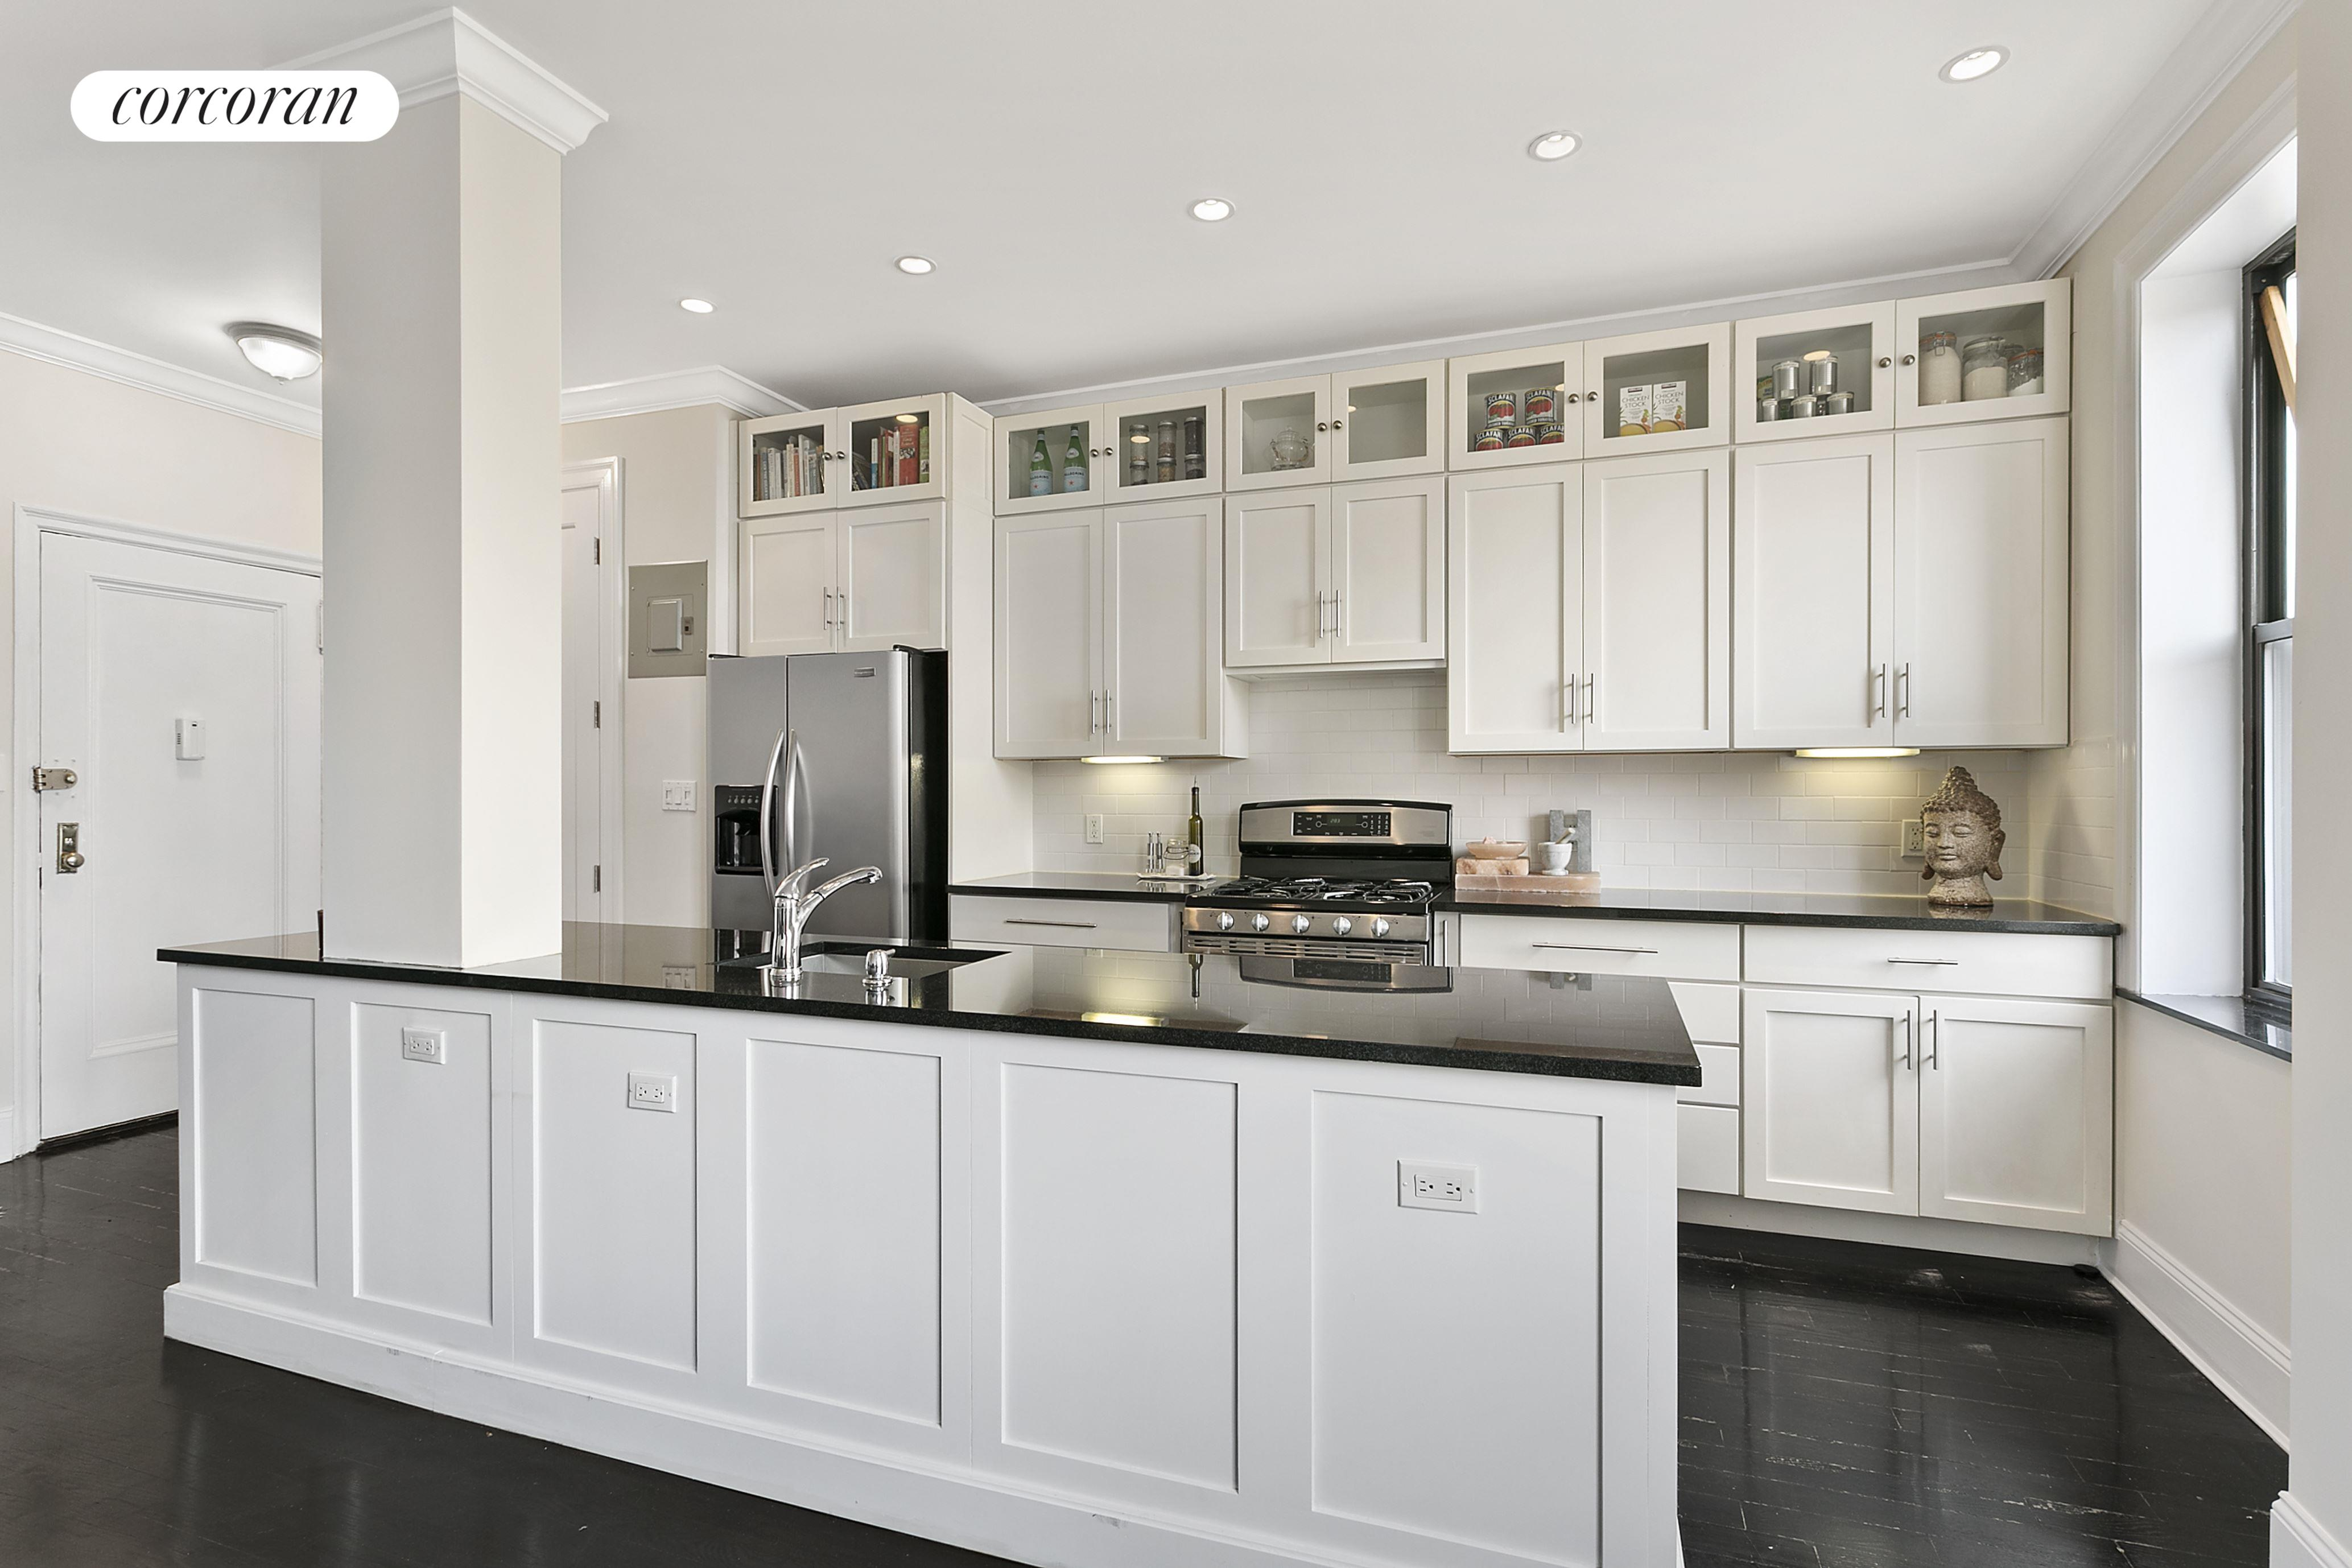 Corcoran, 225 Eastern Parkway, Apt. 3g, Prospect Heights Real Estate ...